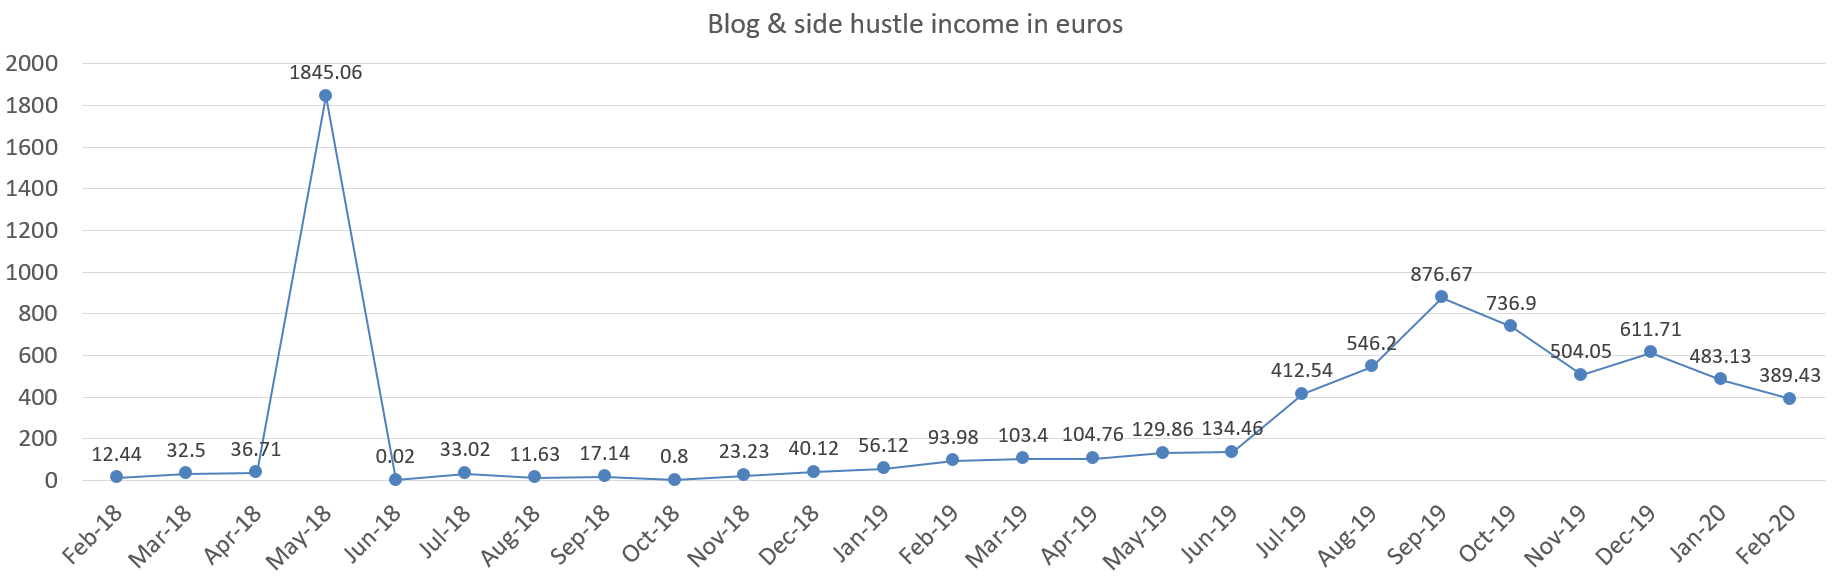 Financefreedom blog and side hustle income in euros february 2020